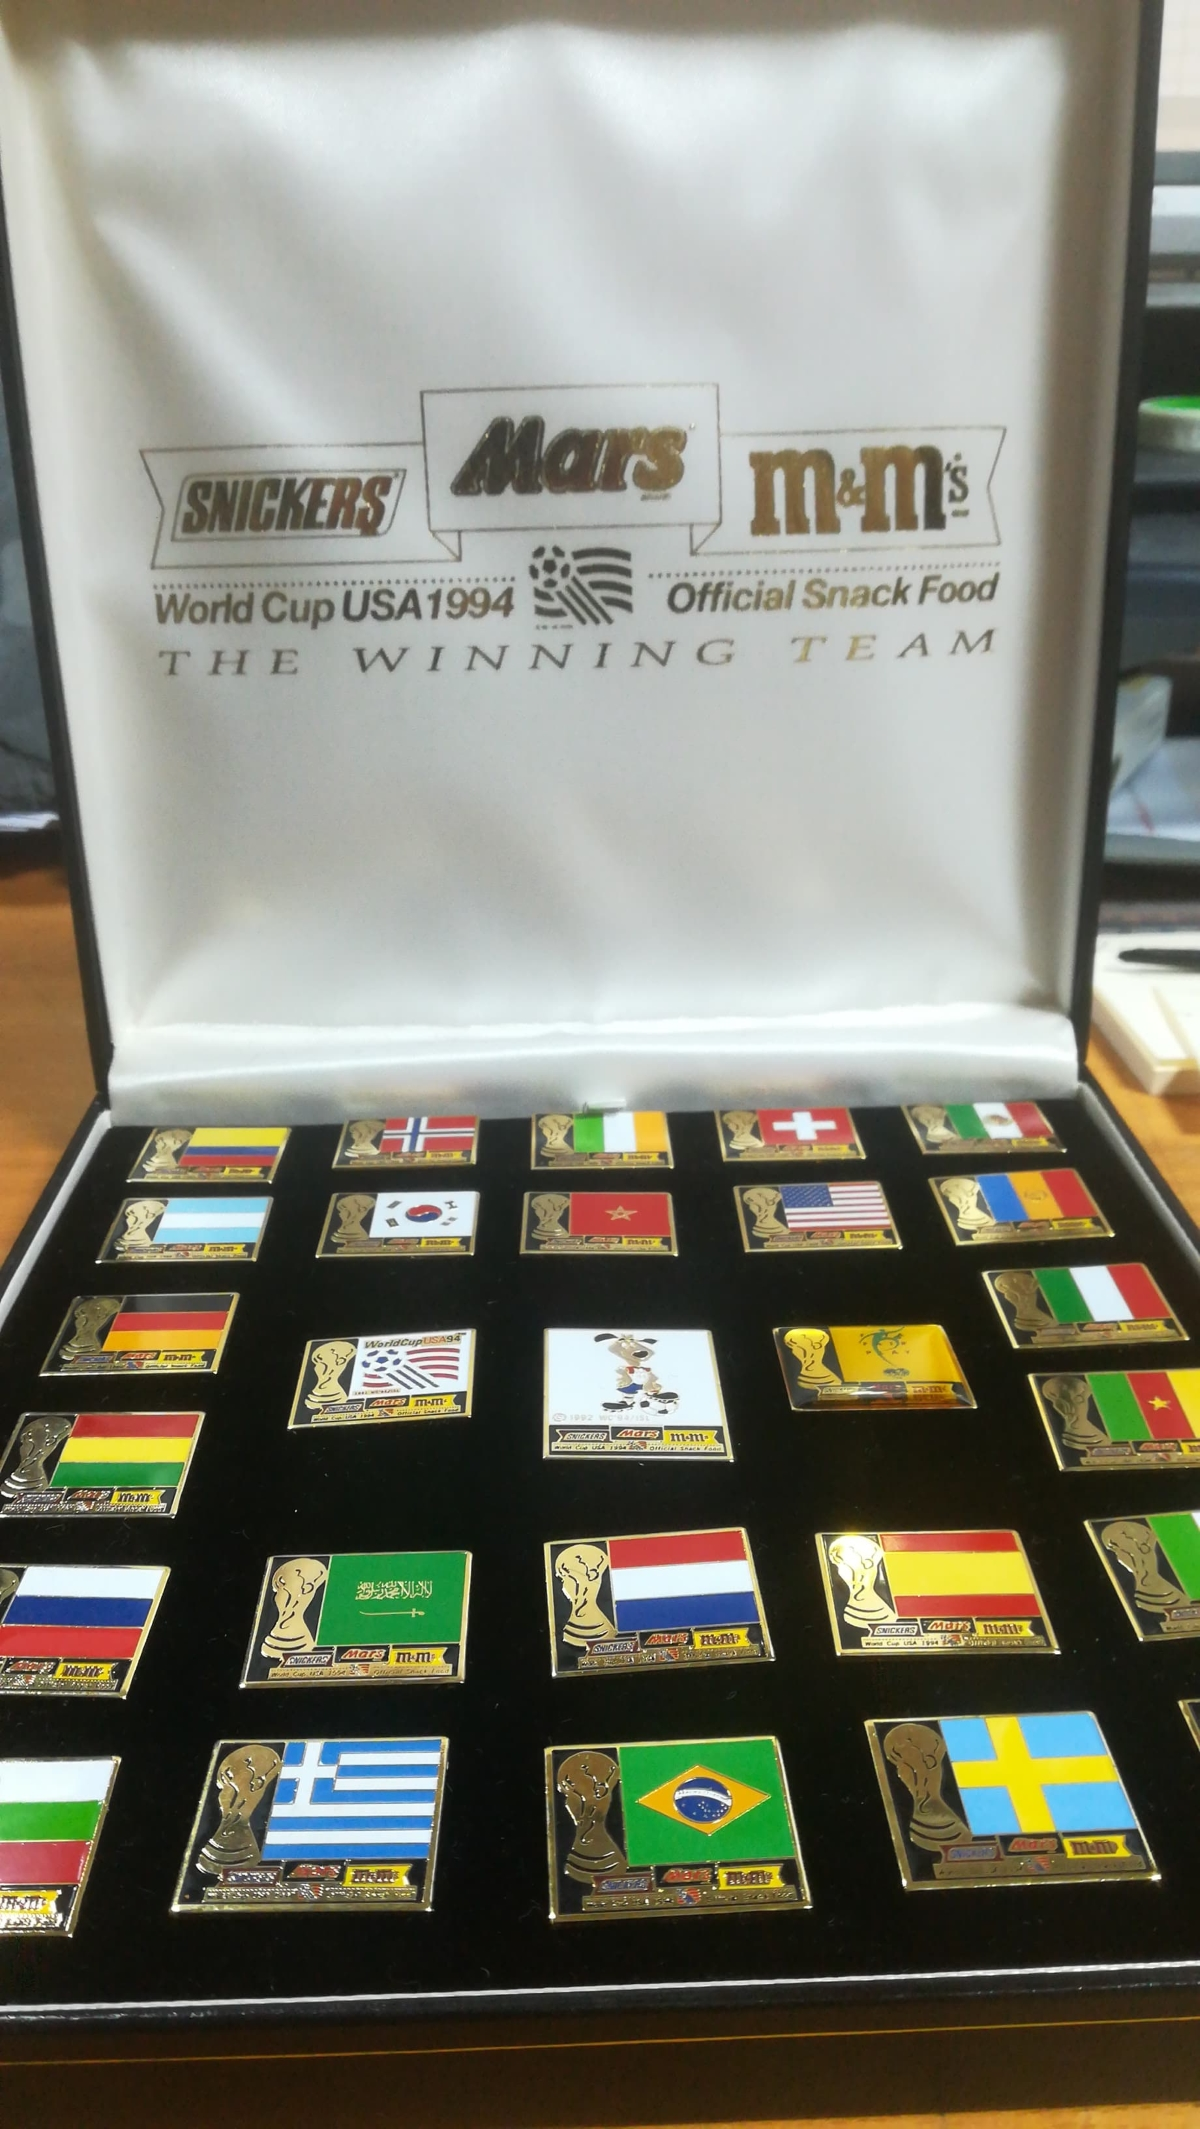 World Cup 1994 mars snickers badge set